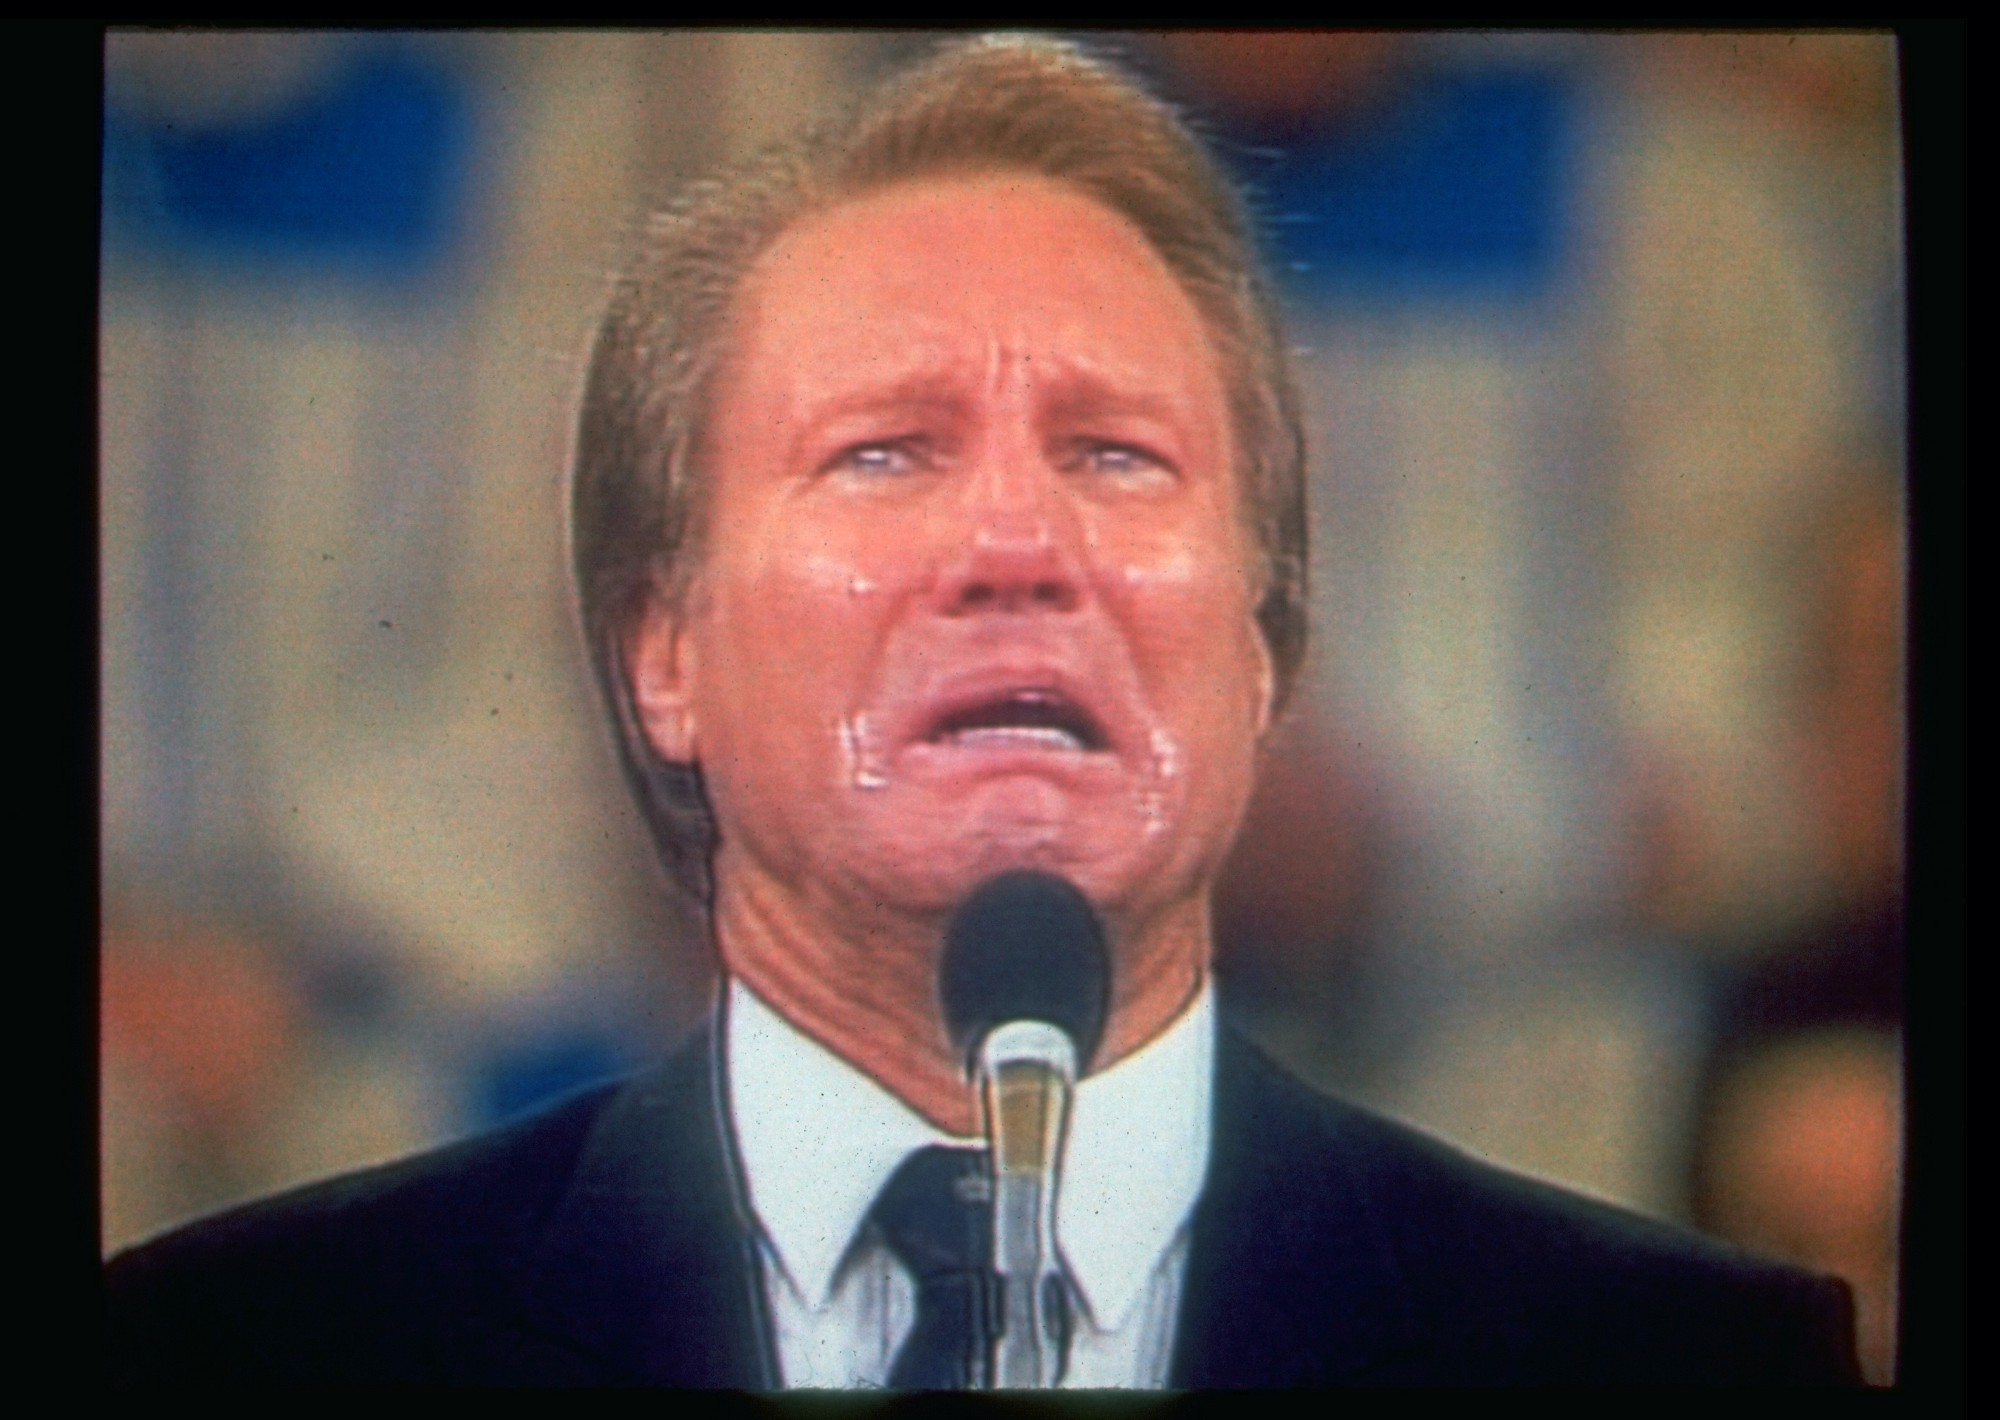 in 1988 jimmy swaggart became the poster boy for corruption in the evangelical revival circuit and hes still preaching today